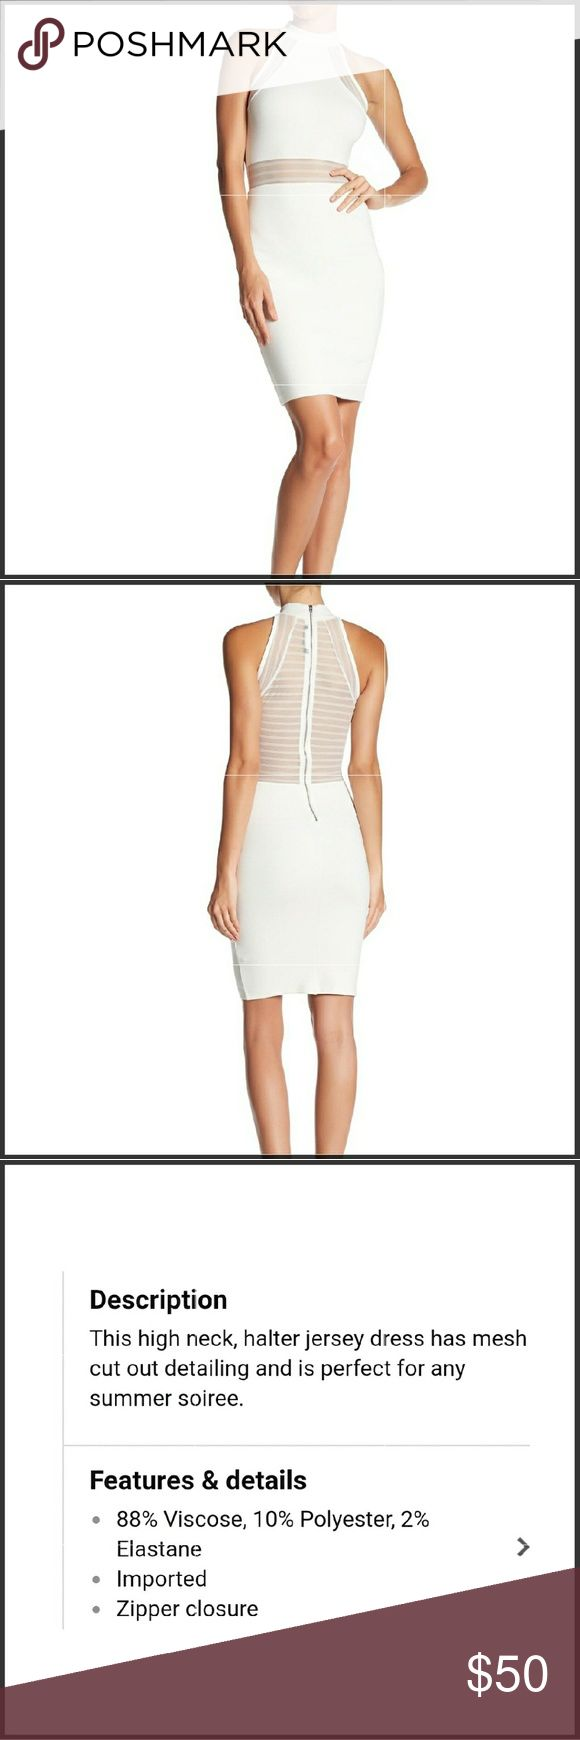 French connection mesh dress NWT Sheer mesh off white dress has a fresh modern look with halter top and mesh stripes,designed with all day versatility in mind.this is a chameleon of a dress you can dress it up or down depending in the accessories you put together,measurements are bust 39.5 waist 33.5 and hips 43.5 French Connection Dresses